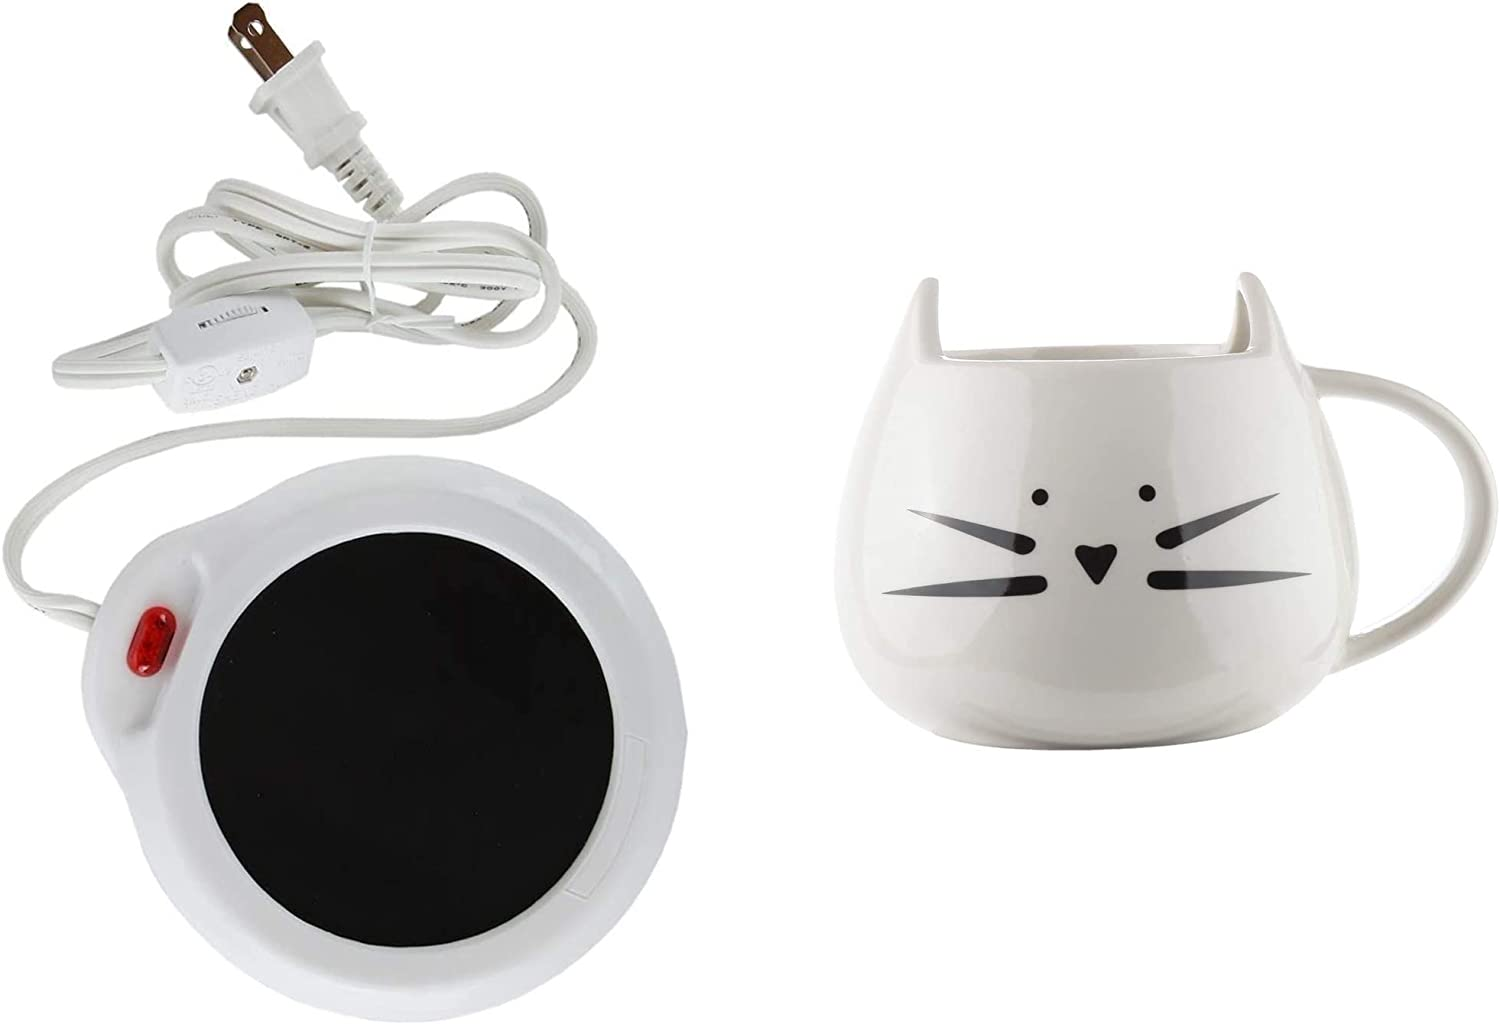 Home-X Desktop Mug Warmer (White) and Ceramic Cat Coffee and Tea Mug, The Perfectly Fun Kitchenware Gift for All Cat Lovers for Any Occasion at Any Meal, White